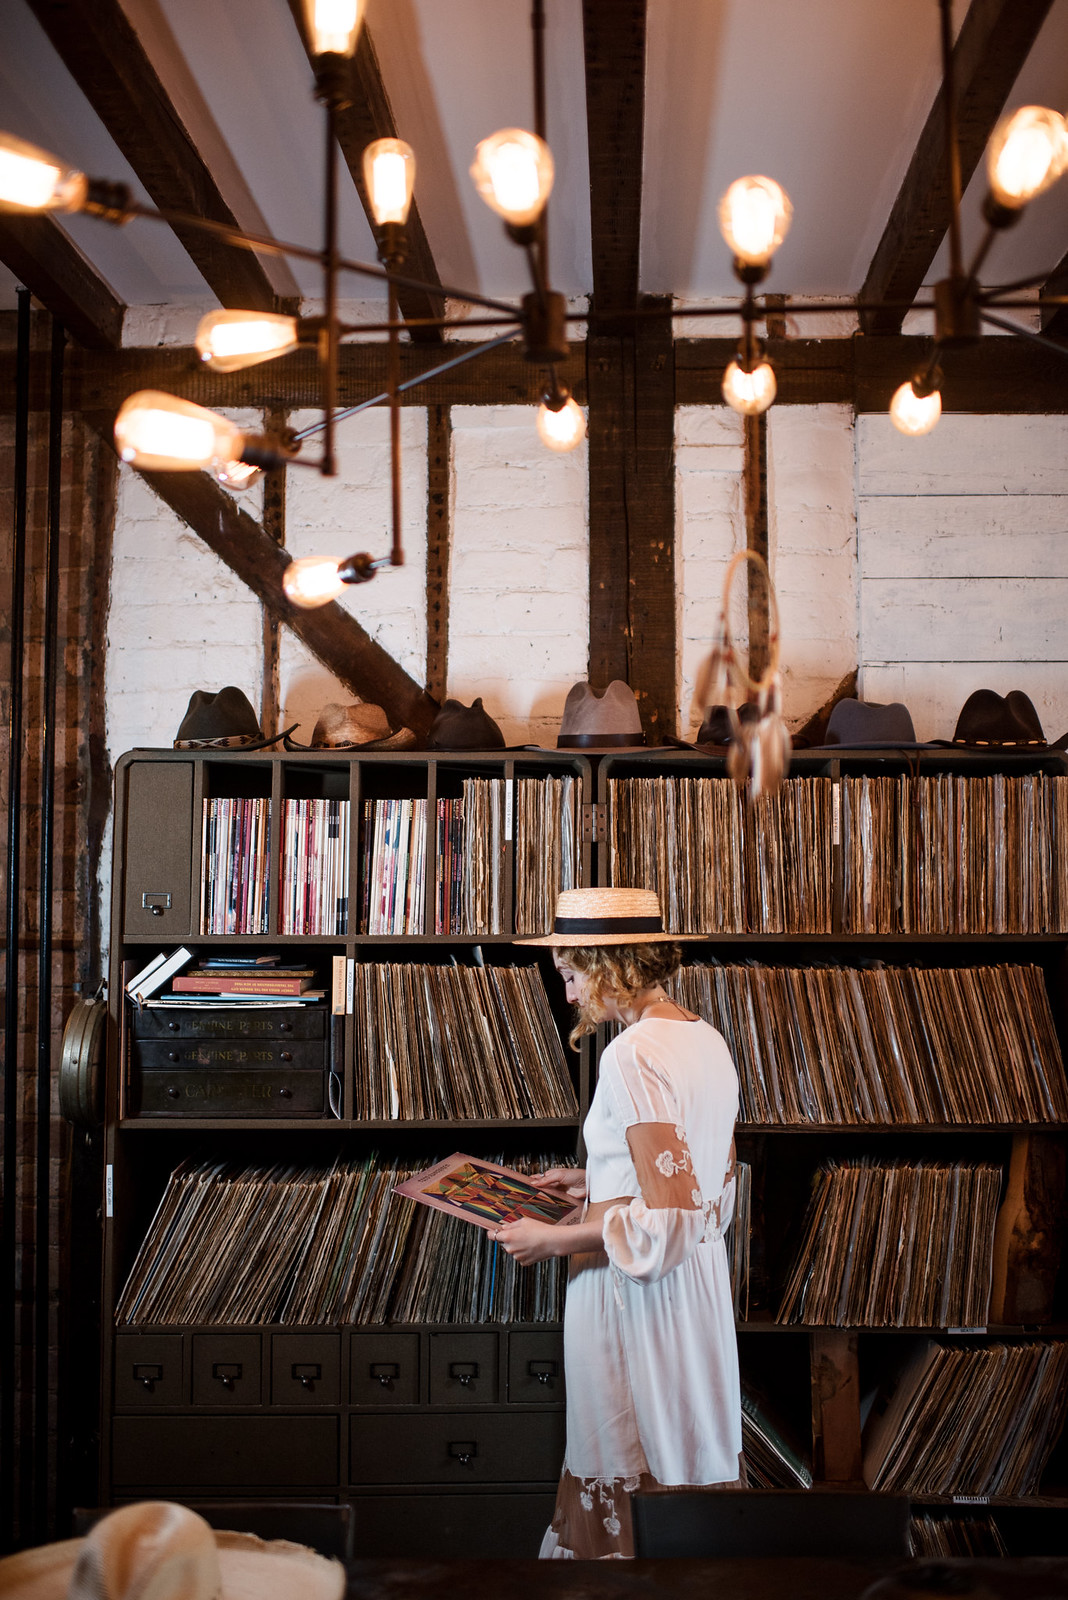 Browsing the Urban Cowboy Record Collection on juliettelaura.blogspot.com